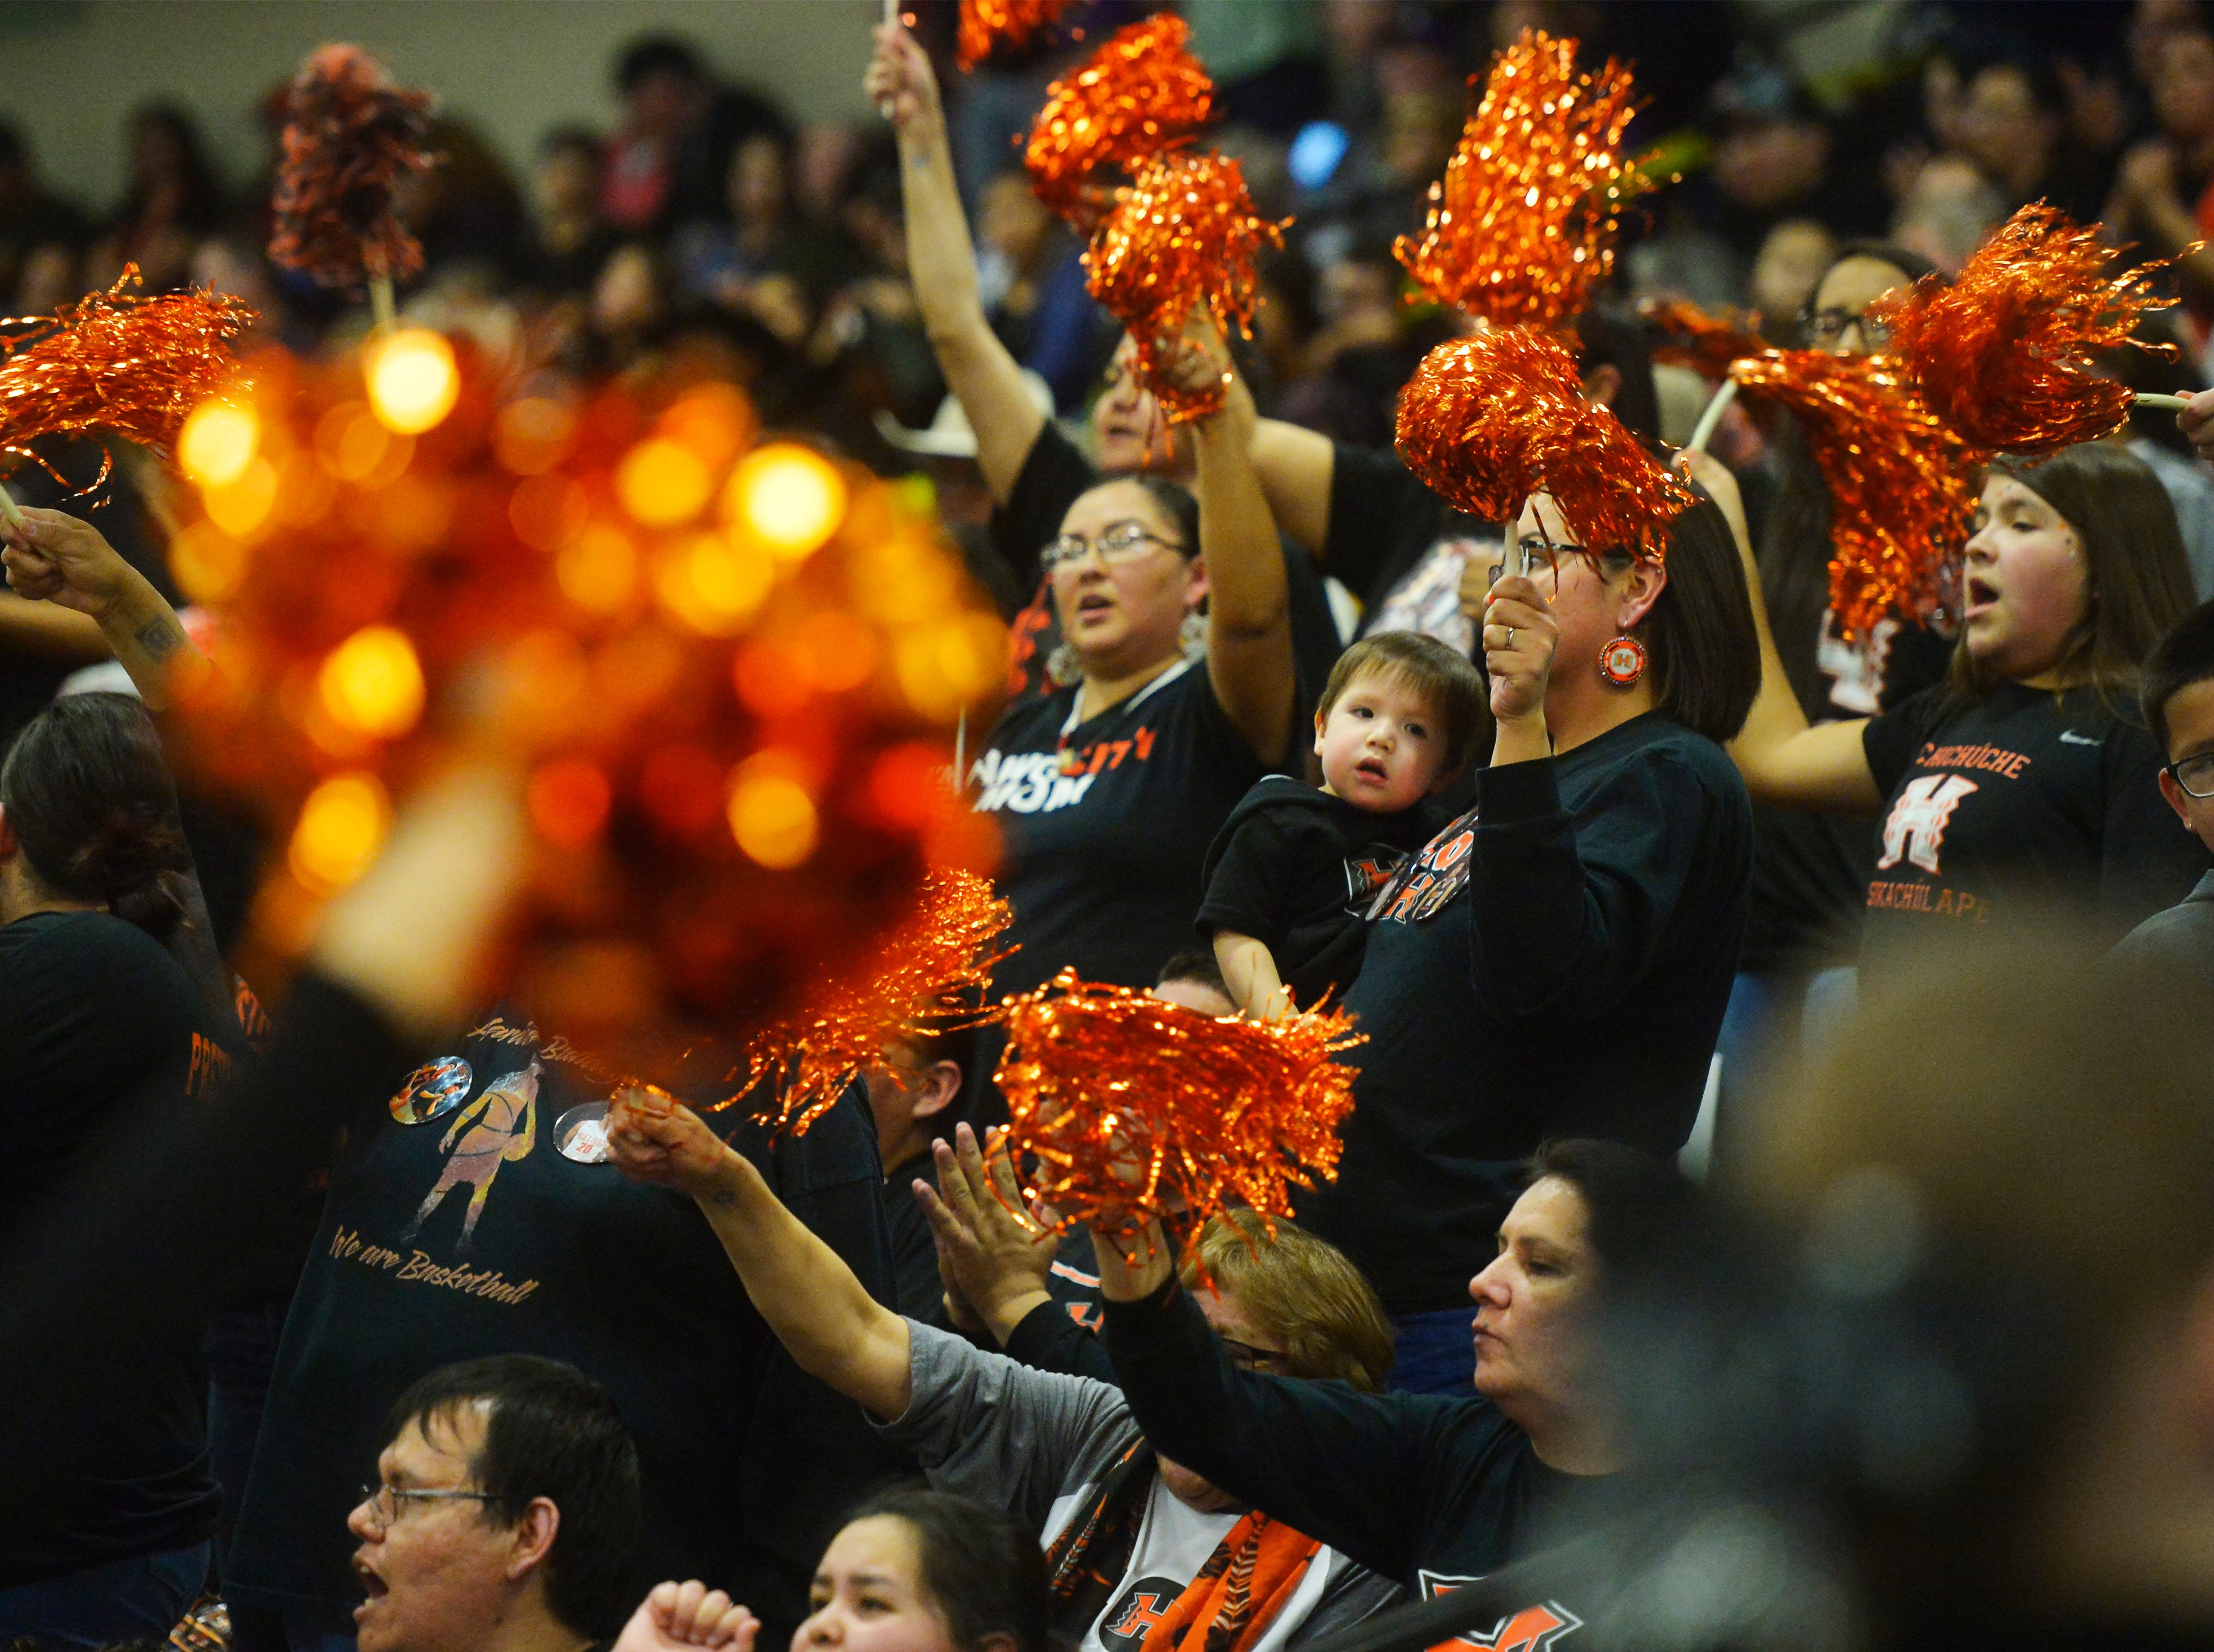 Hardin fans cheer during Thursday's game against Browning at the Class A State Basketball Tournament in the Four Seasons Arena.